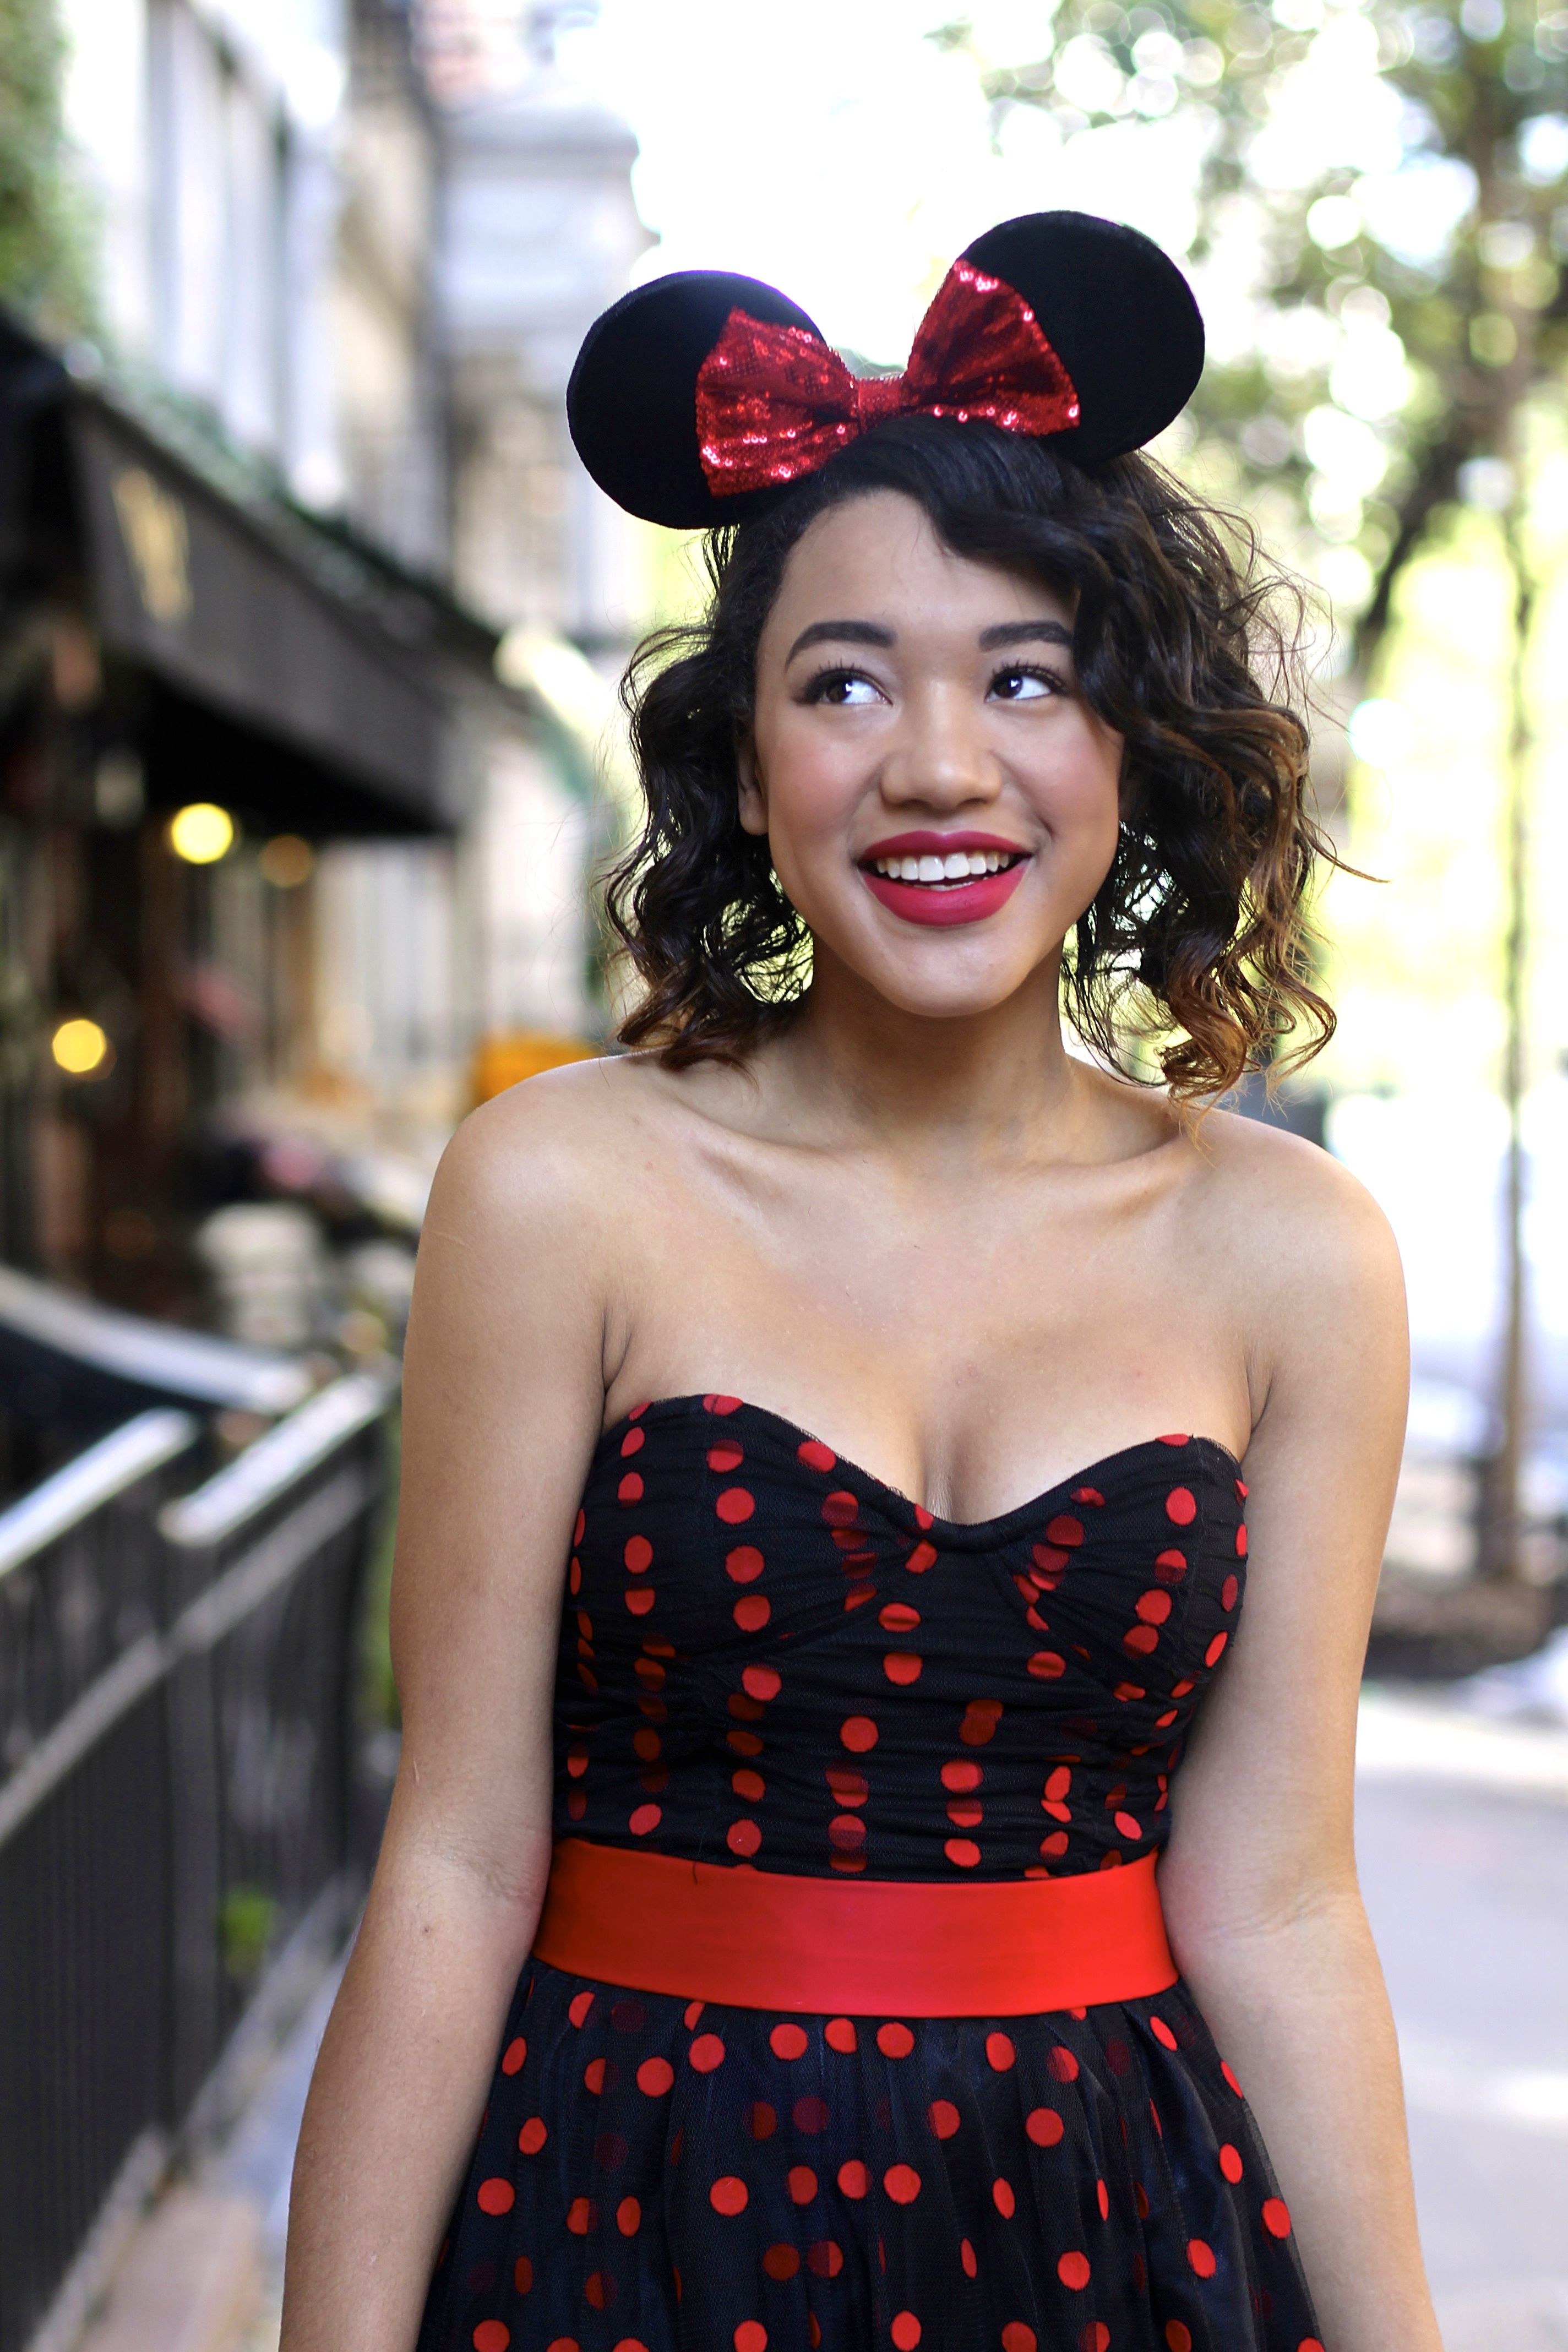 Easy do it yourself minnie mouse halloween costume via easy do it yourself minnie mouse halloween costume via colormecourtney solutioingenieria Image collections